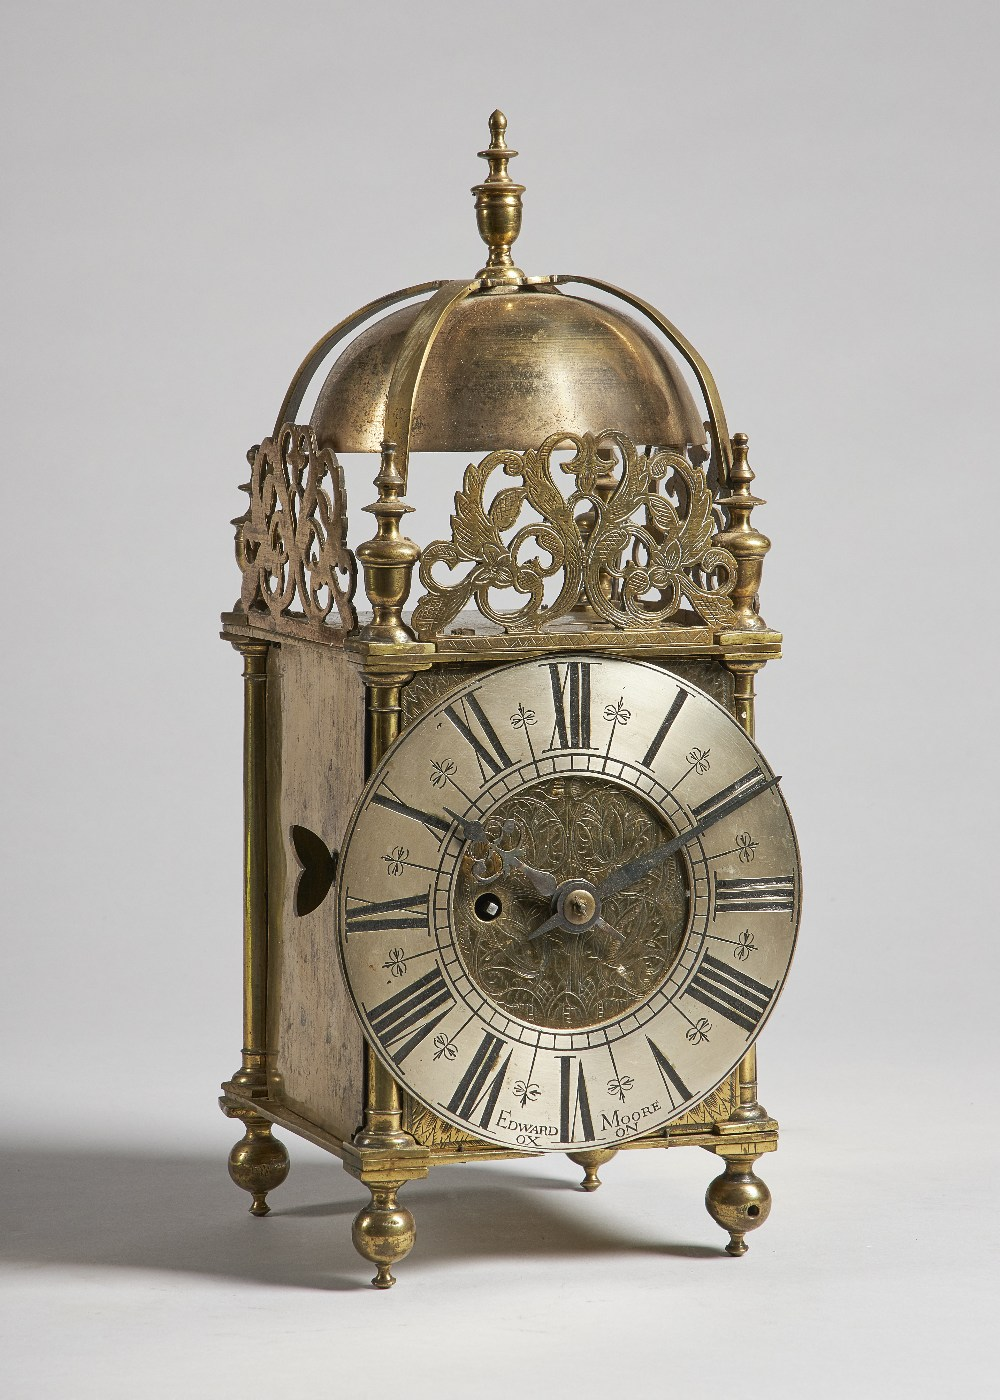 Lot 648 - A brass lantern timepiece The dial signed Edward Moore, Oxon, the frame 18th century,